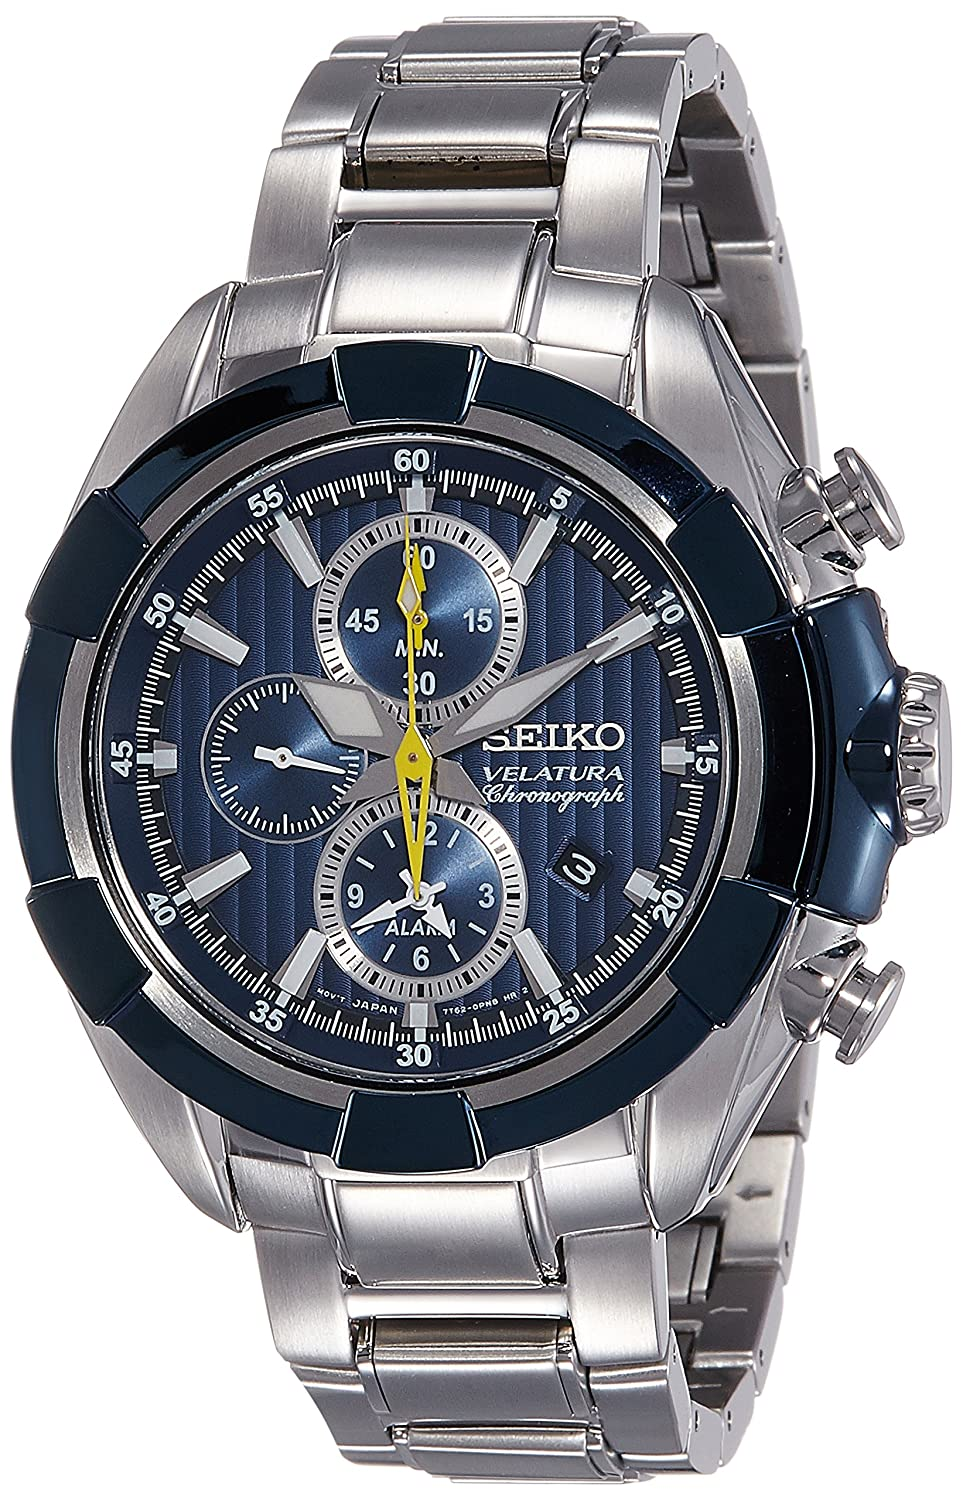 39ee59c5b Buy Seiko Velatura Chronograph 100M WR Men's Watch(SNAF41P1) Online at Low  Prices in India - Amazon.in